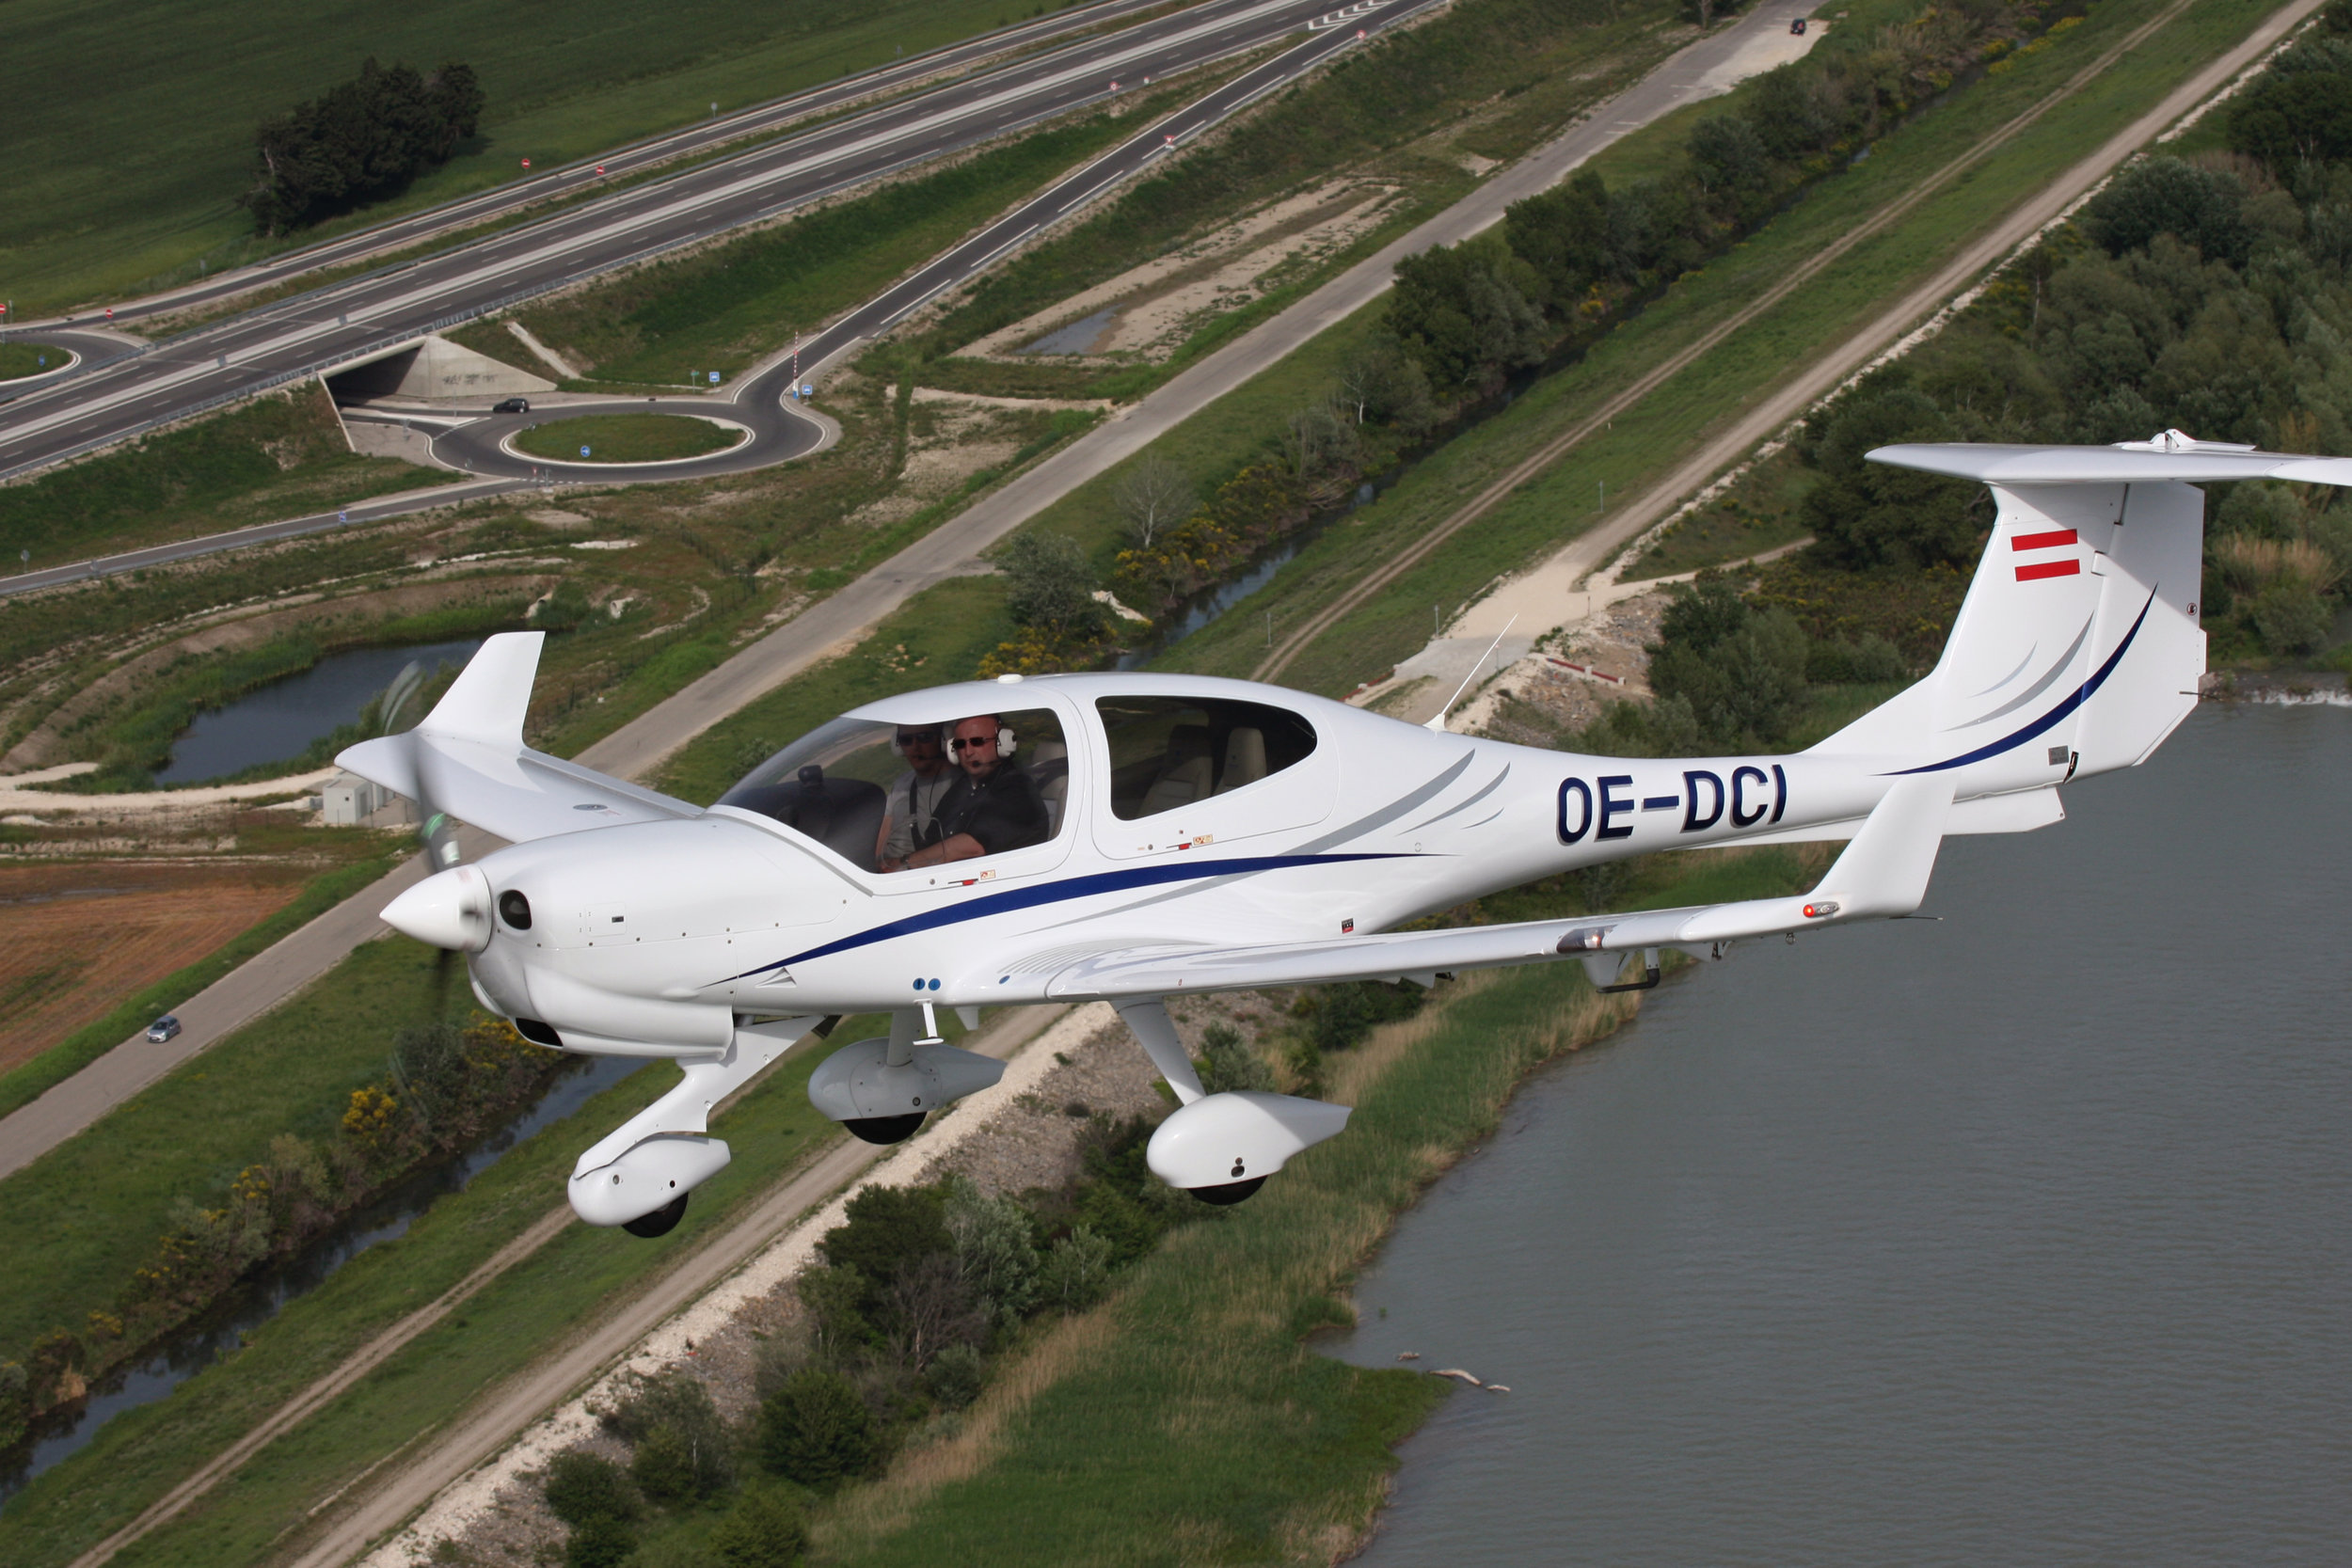 DA40 XLT - • 4 Seats / Big Baggage Space• Superb Visibility• Durable Composite Airframe• Superior Stability and Control• Personal Use or Flight Training